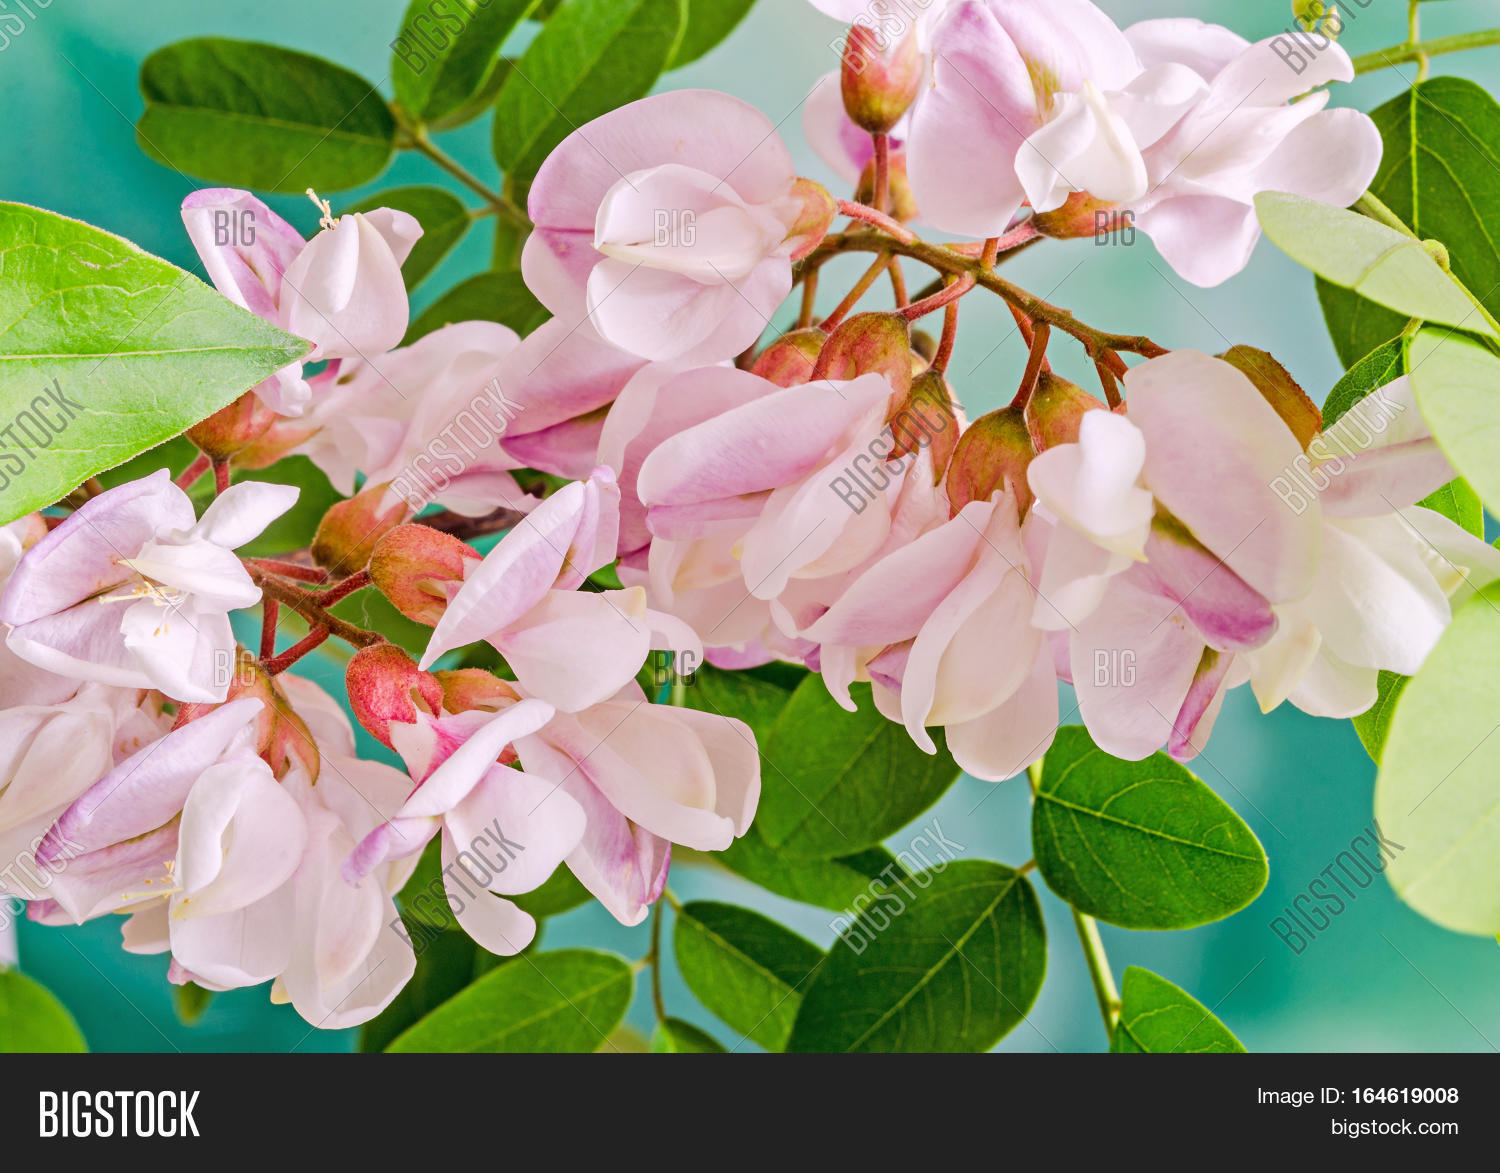 Pink robinia image photo free trial bigstock pink robinia pseudoacacia tree flowers know as black locust genus robinia family fabaceae mightylinksfo